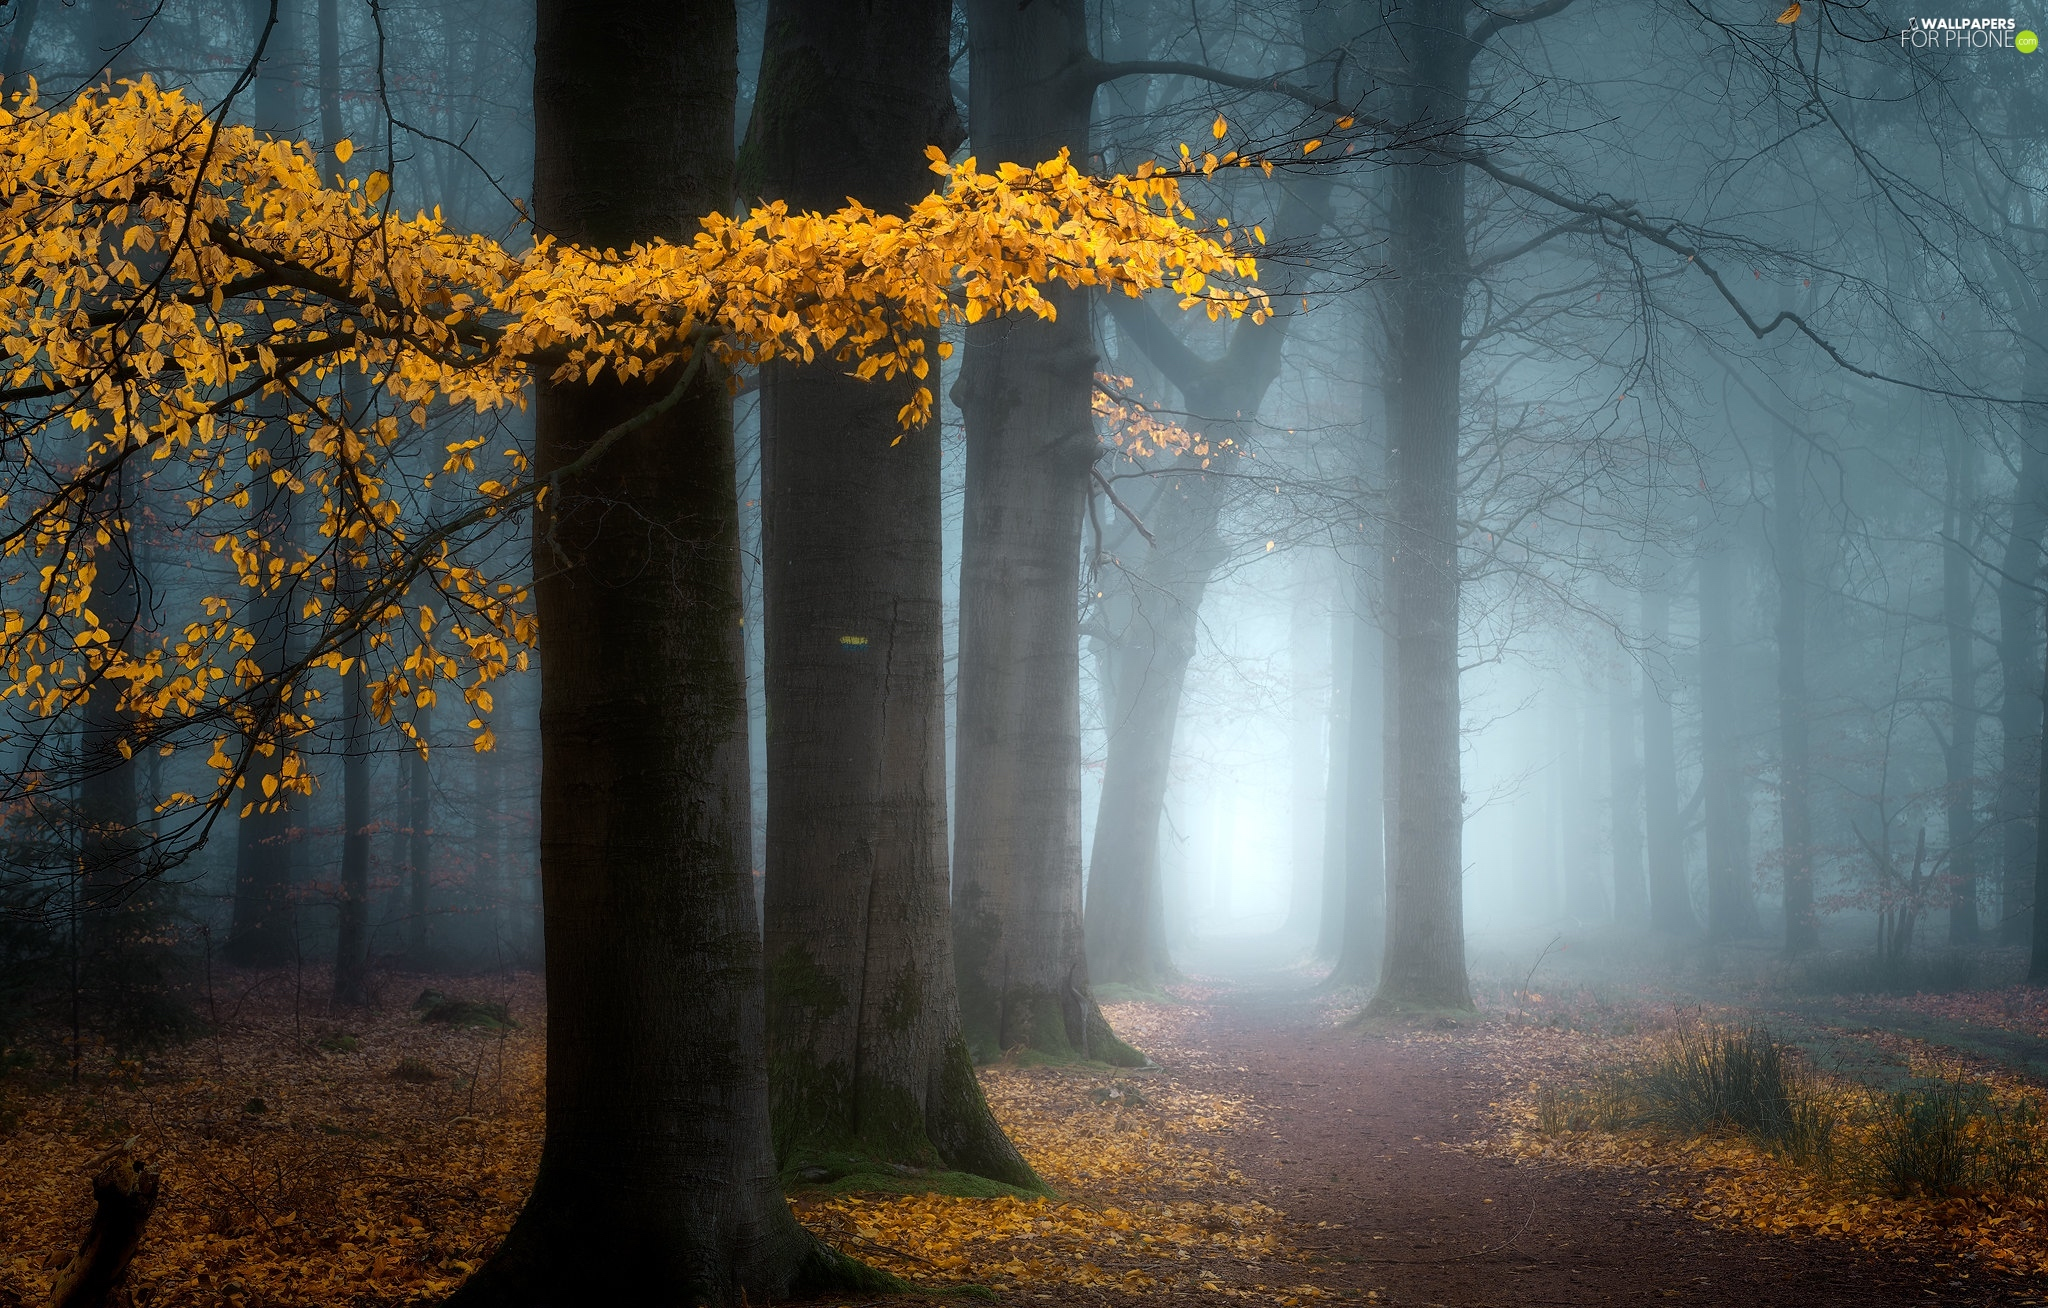 trees, forest, viewes, autumn, Leaf, Path, branch, Yellow, Fog